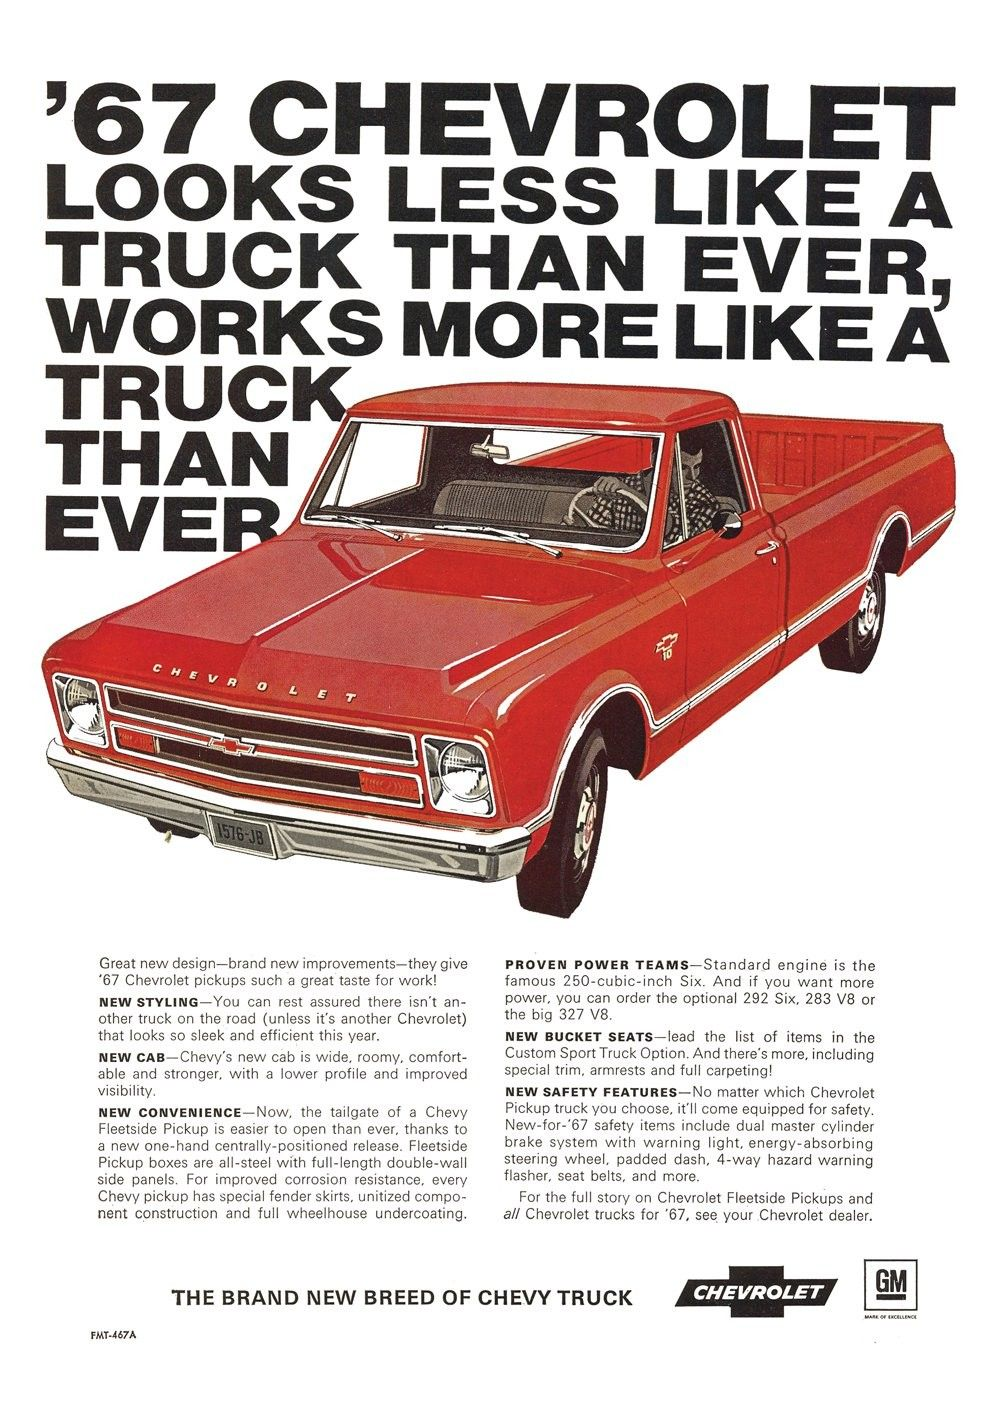 Pin by James Gilbert Luper on Old car/truck advertising | Pinterest ...